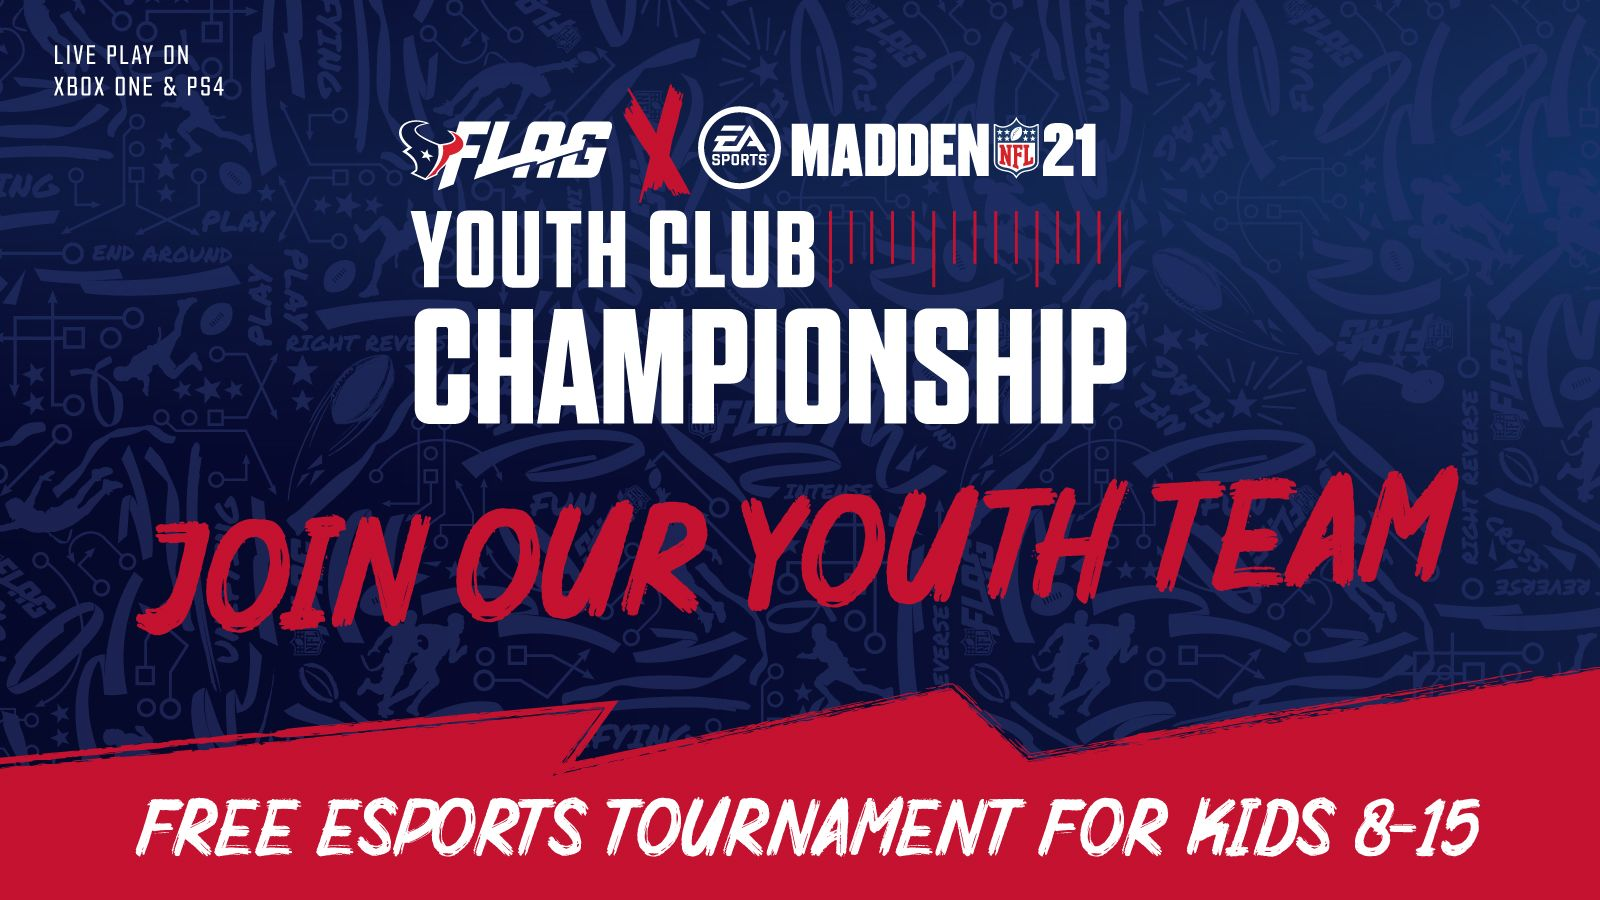 Flag and Madden Youth Club Championship. Join our Youth Team. Free Esports Tournament for Kids 8-15